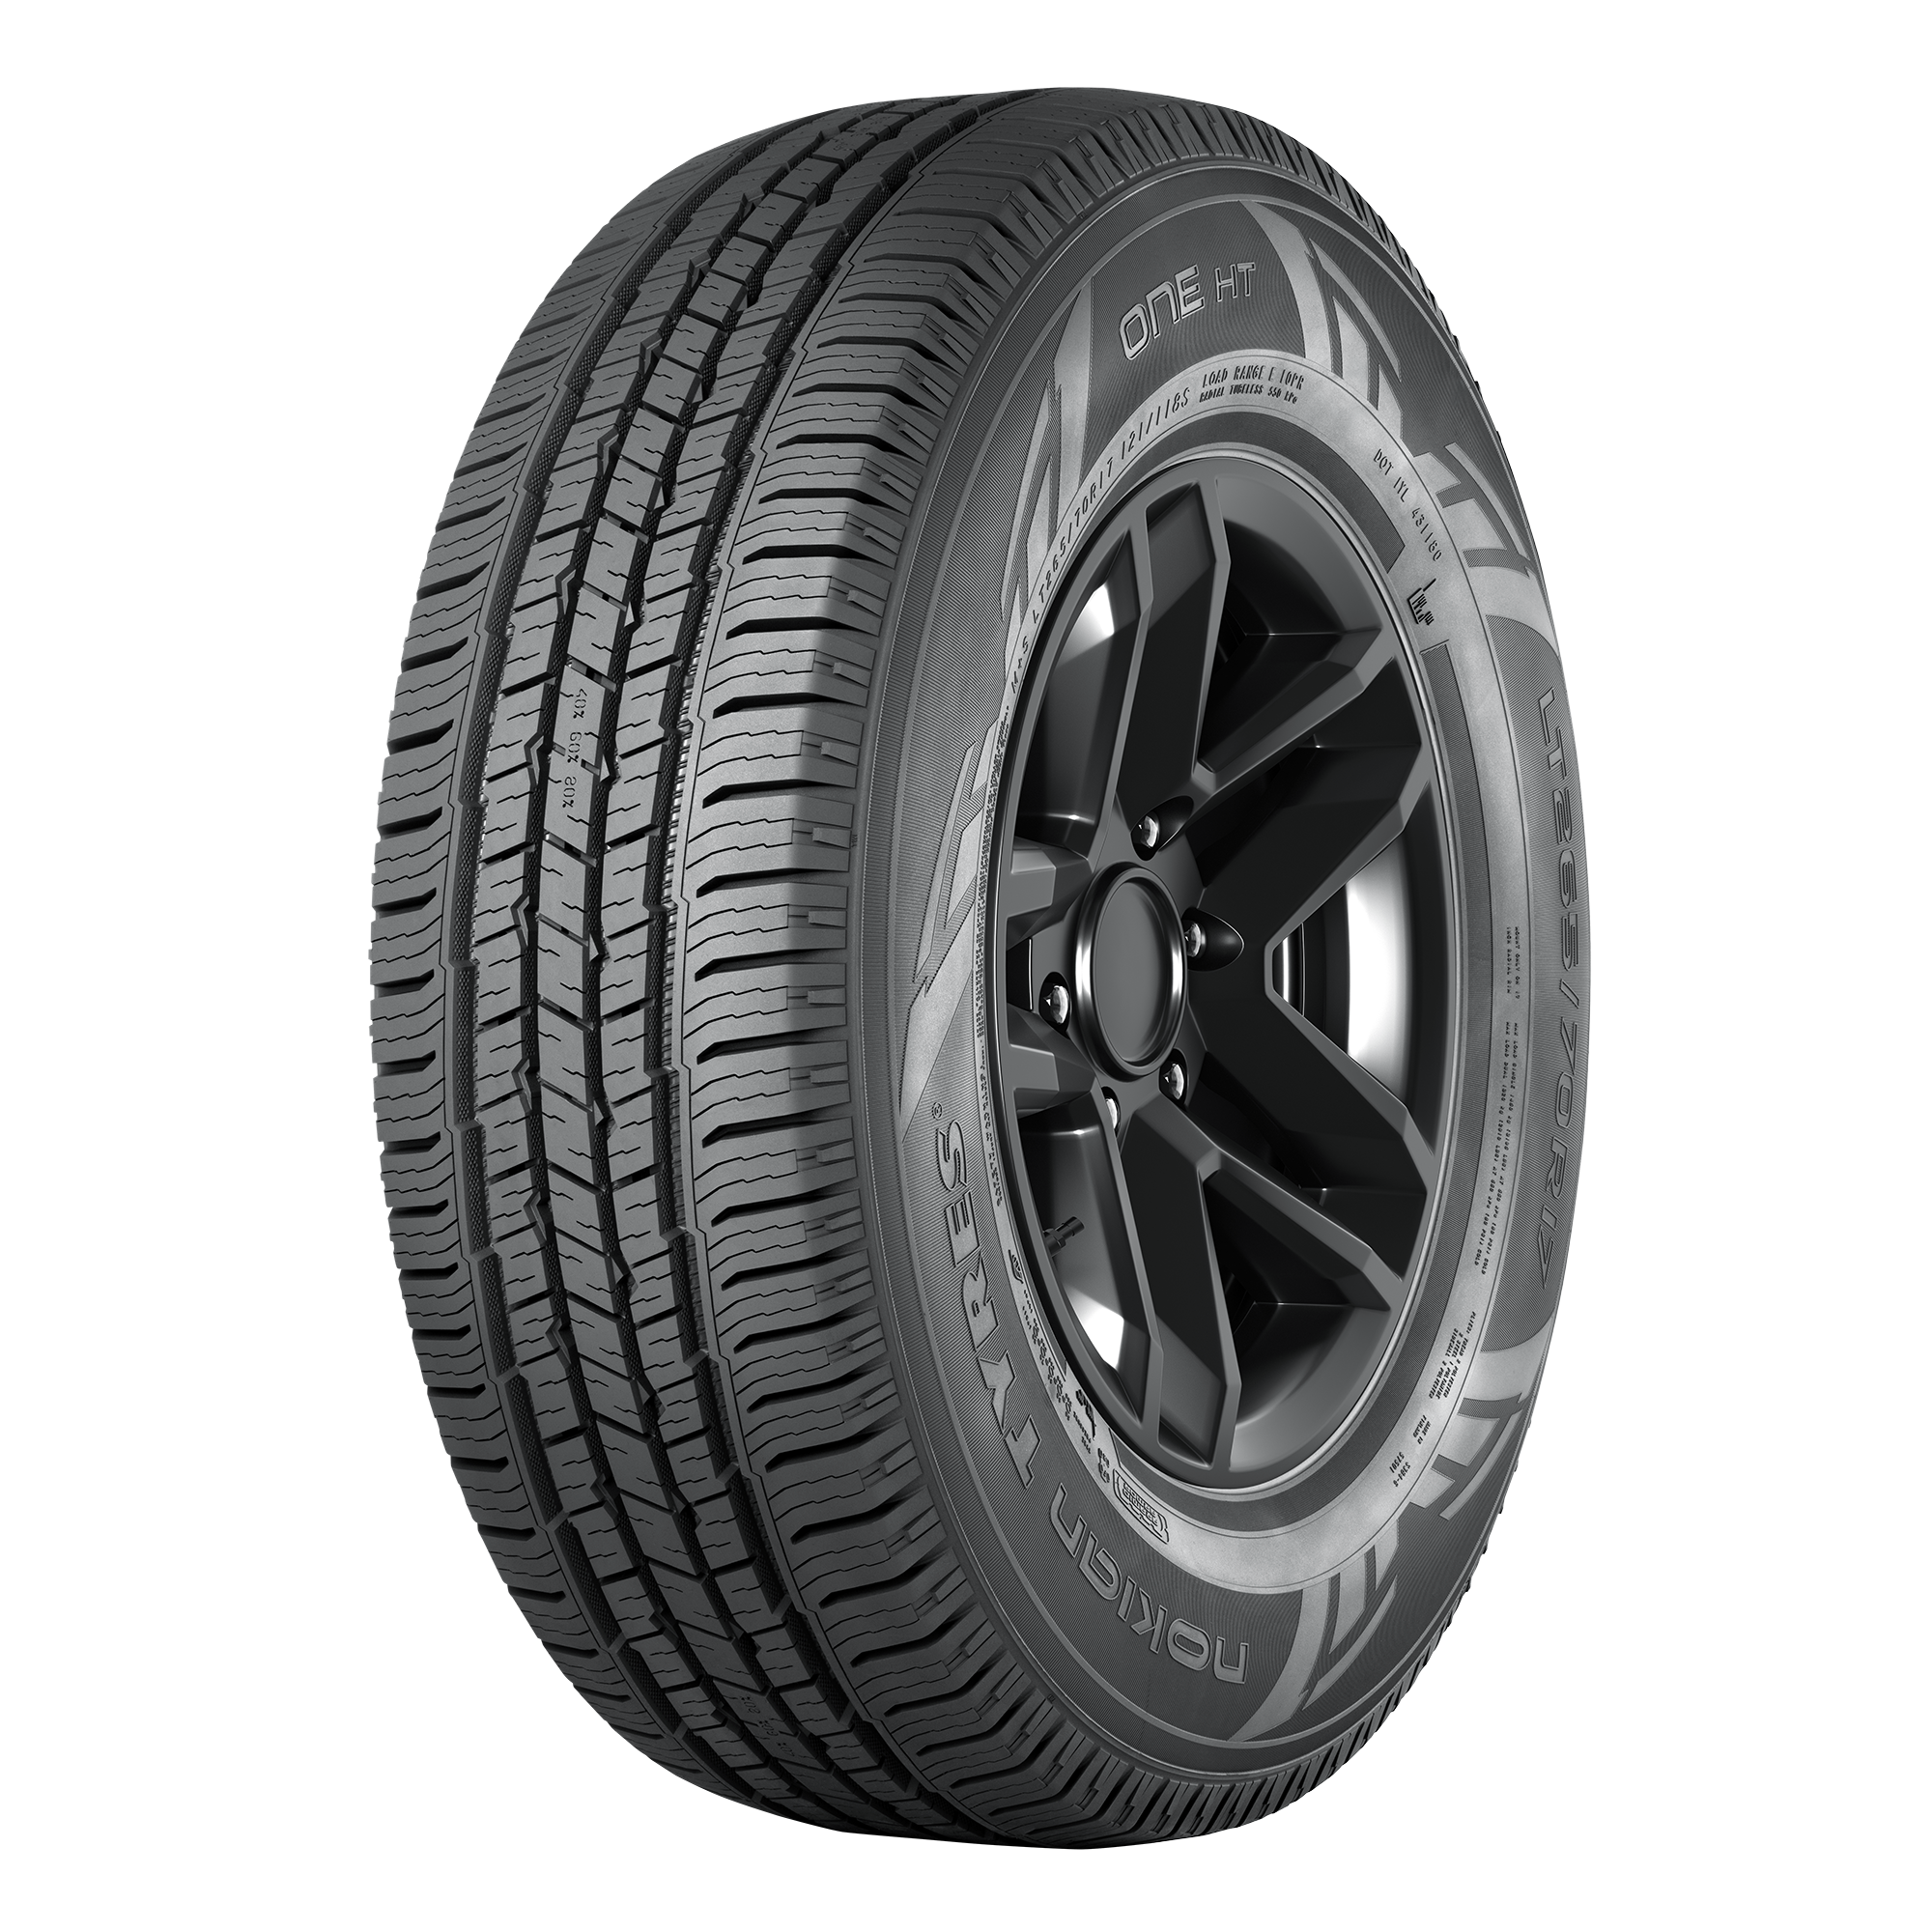 Nokian_ONE_HT_with_rim_Cut-out_2000x2000 (1)